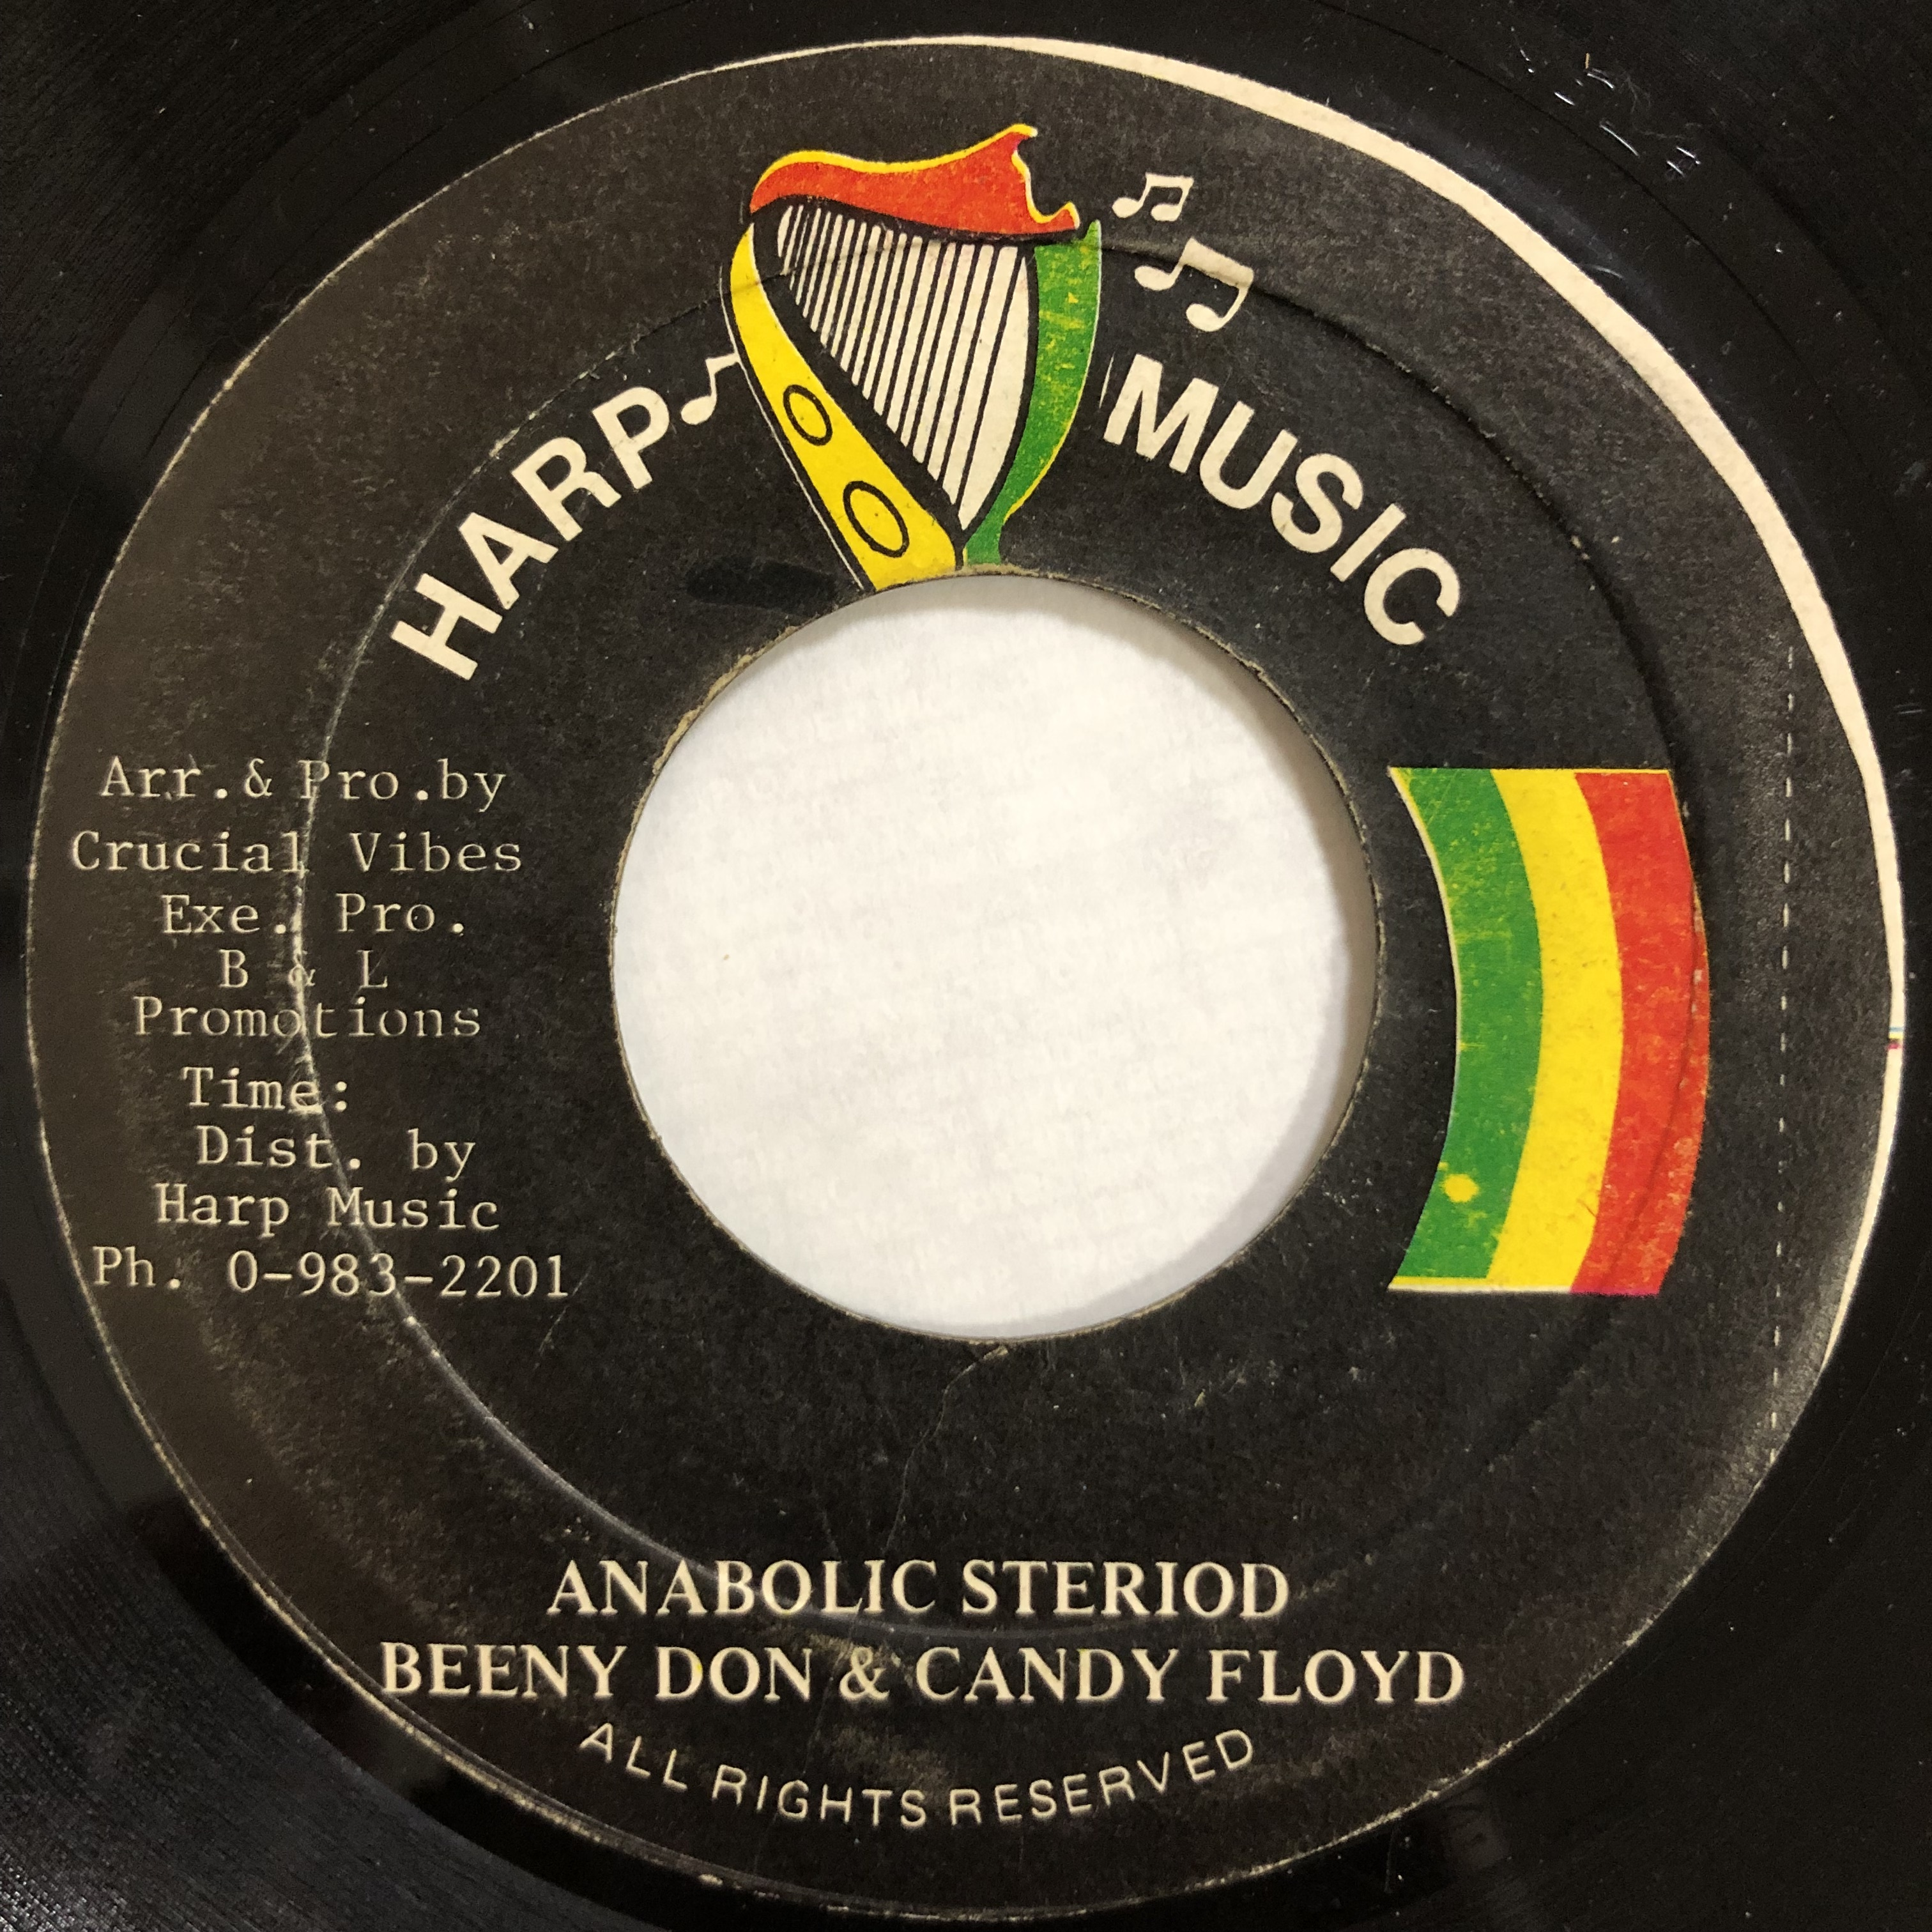 Beeny Don, Candy Floyd - Anabolic Steriod【7-20153】